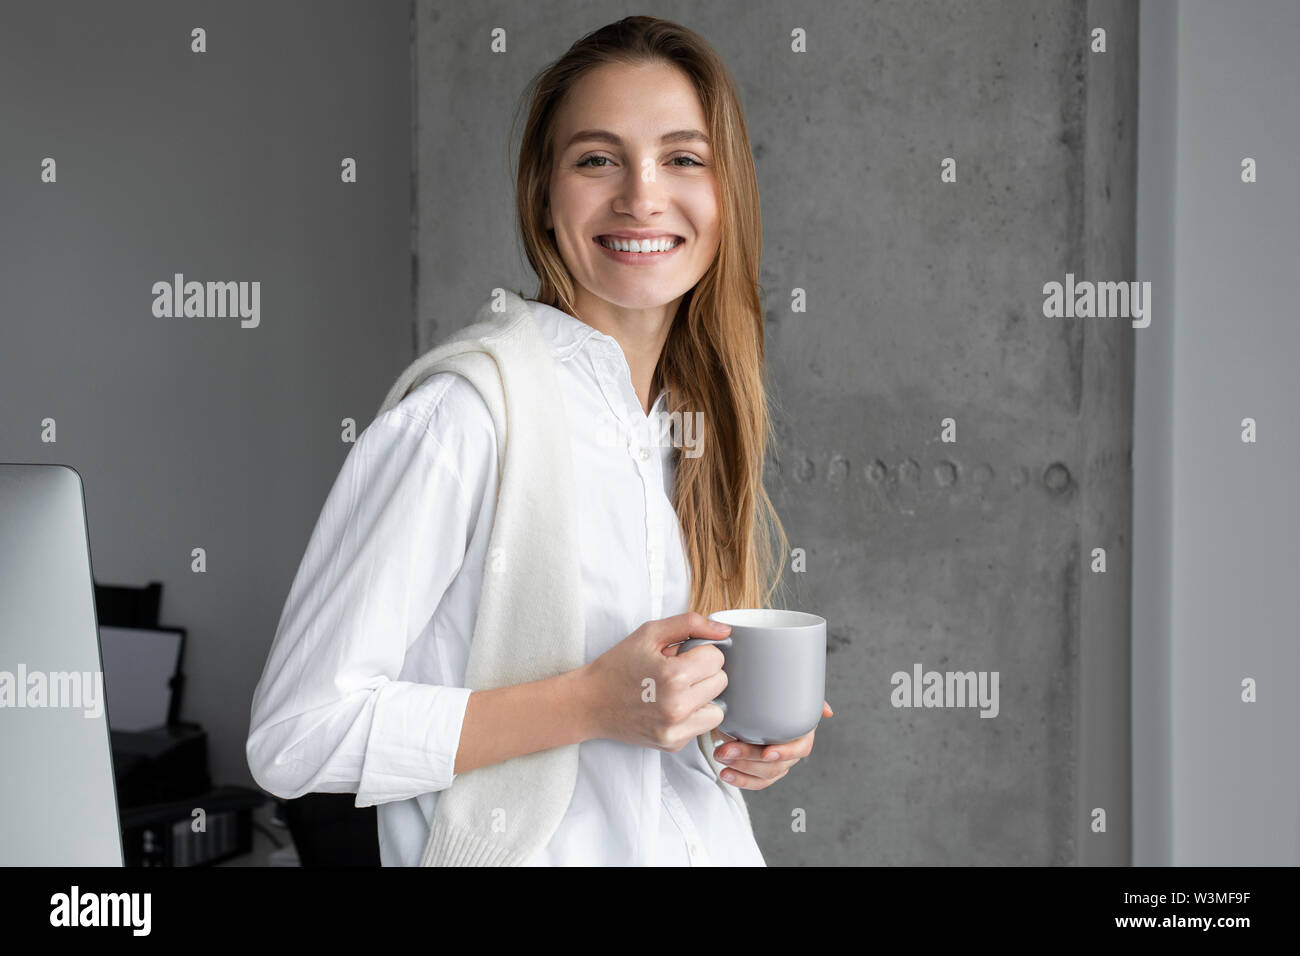 Smiling businesswoman with coffee cup - Stock Image